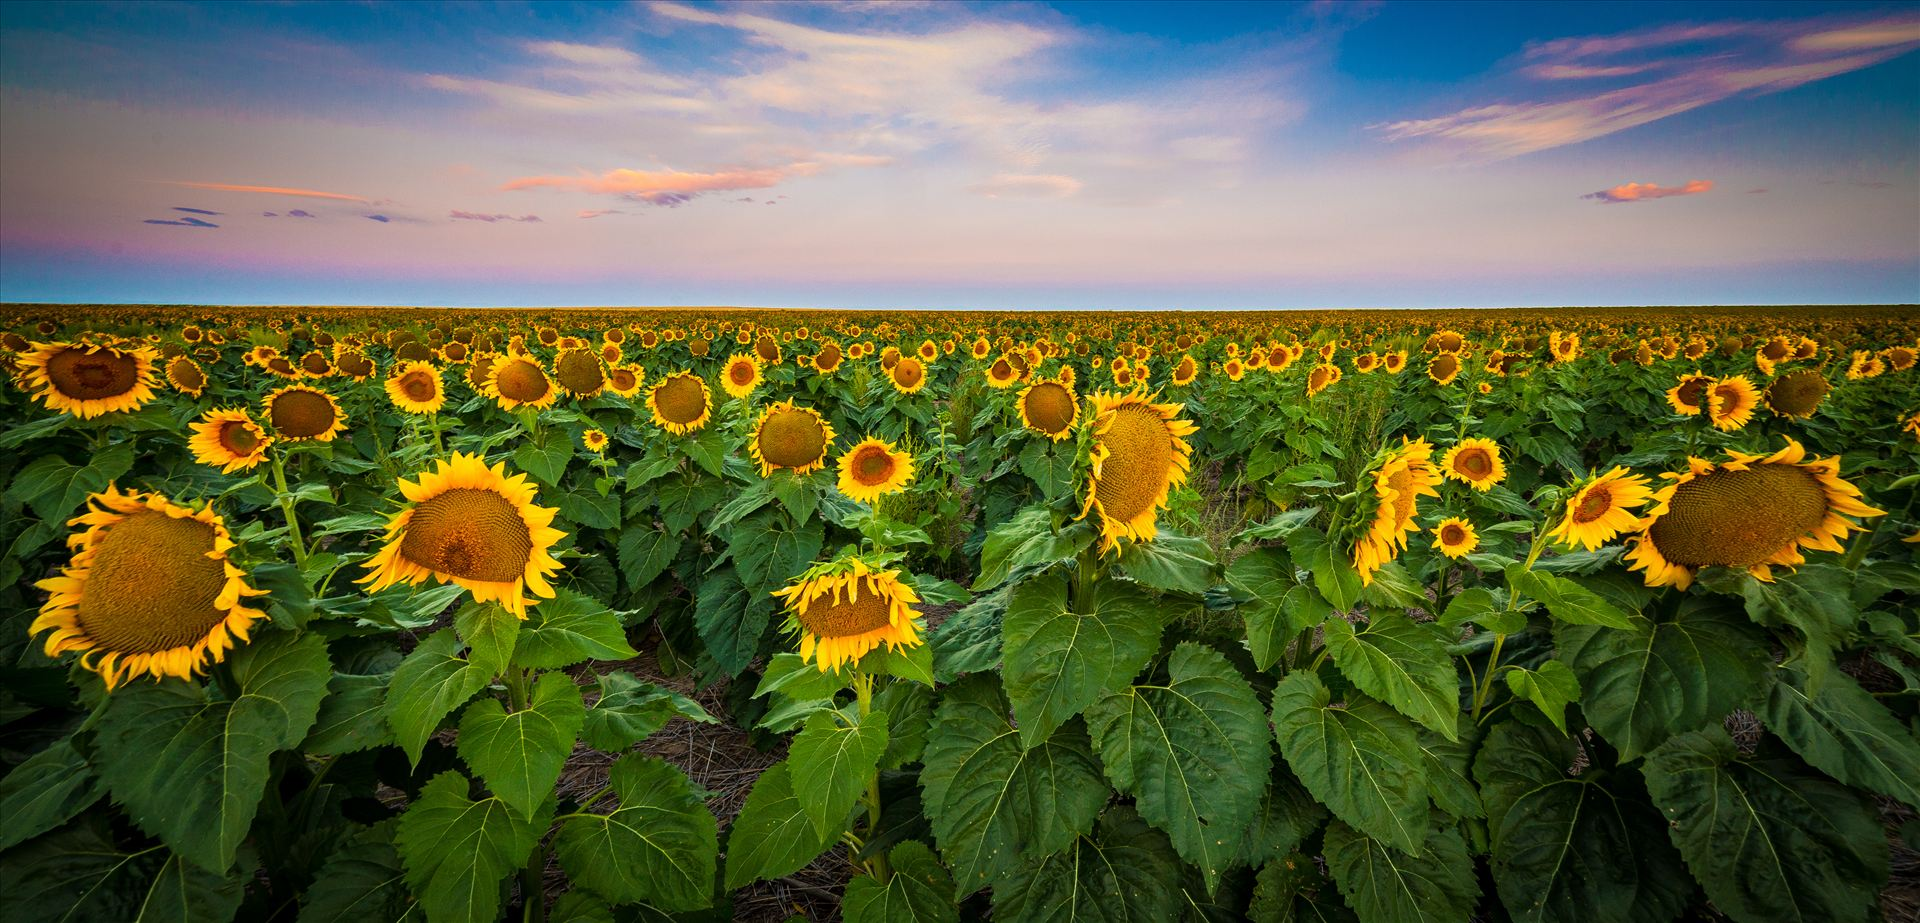 Colorado Sunflower Sunrise - Sunflowers near Denver International Airport. by D Scott Smith